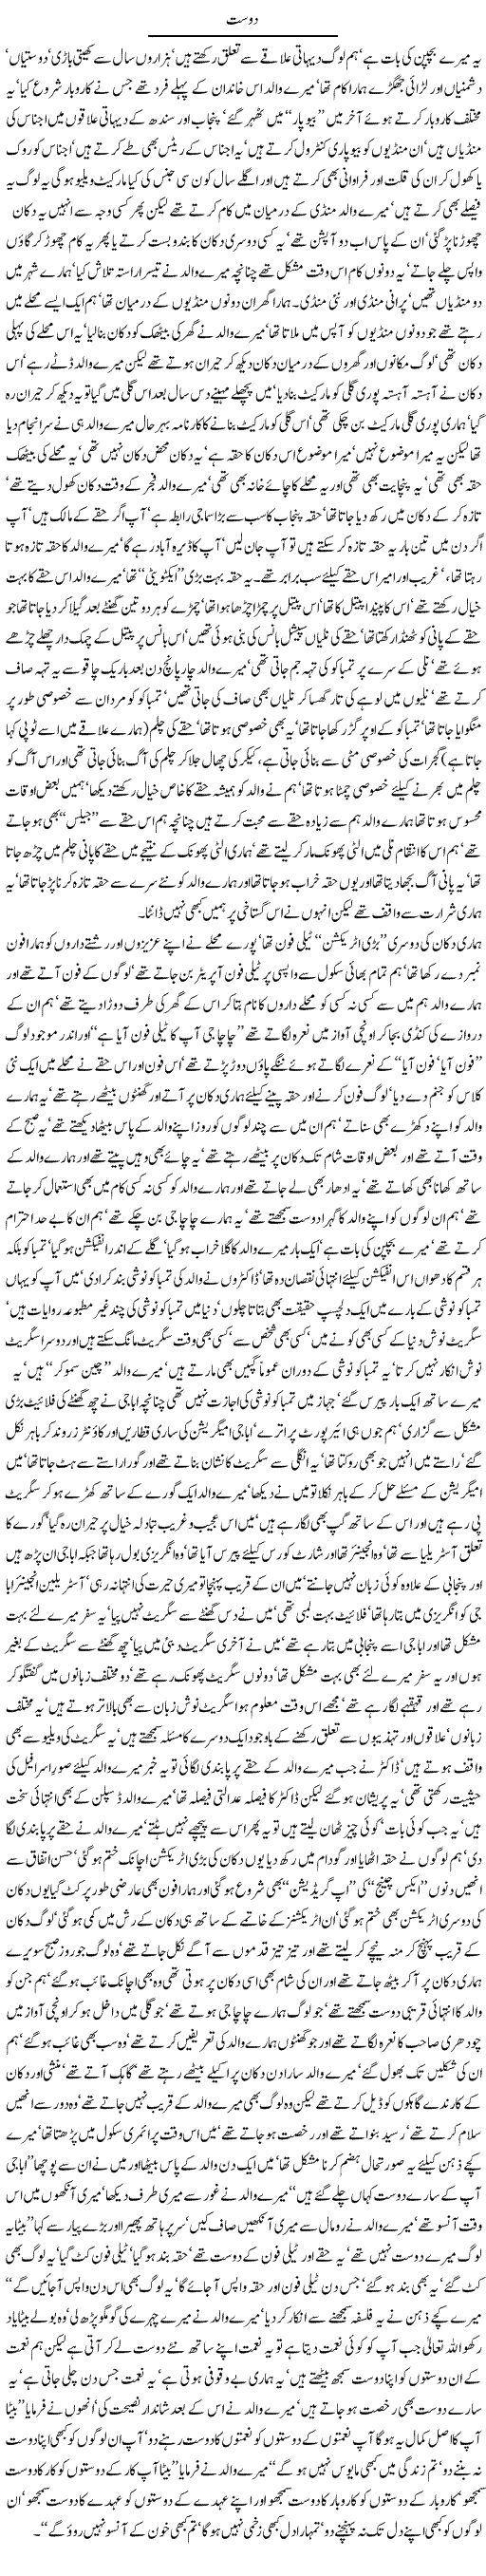 Dost Javed Chaudhry Column True Quotes Beautiful Quotes